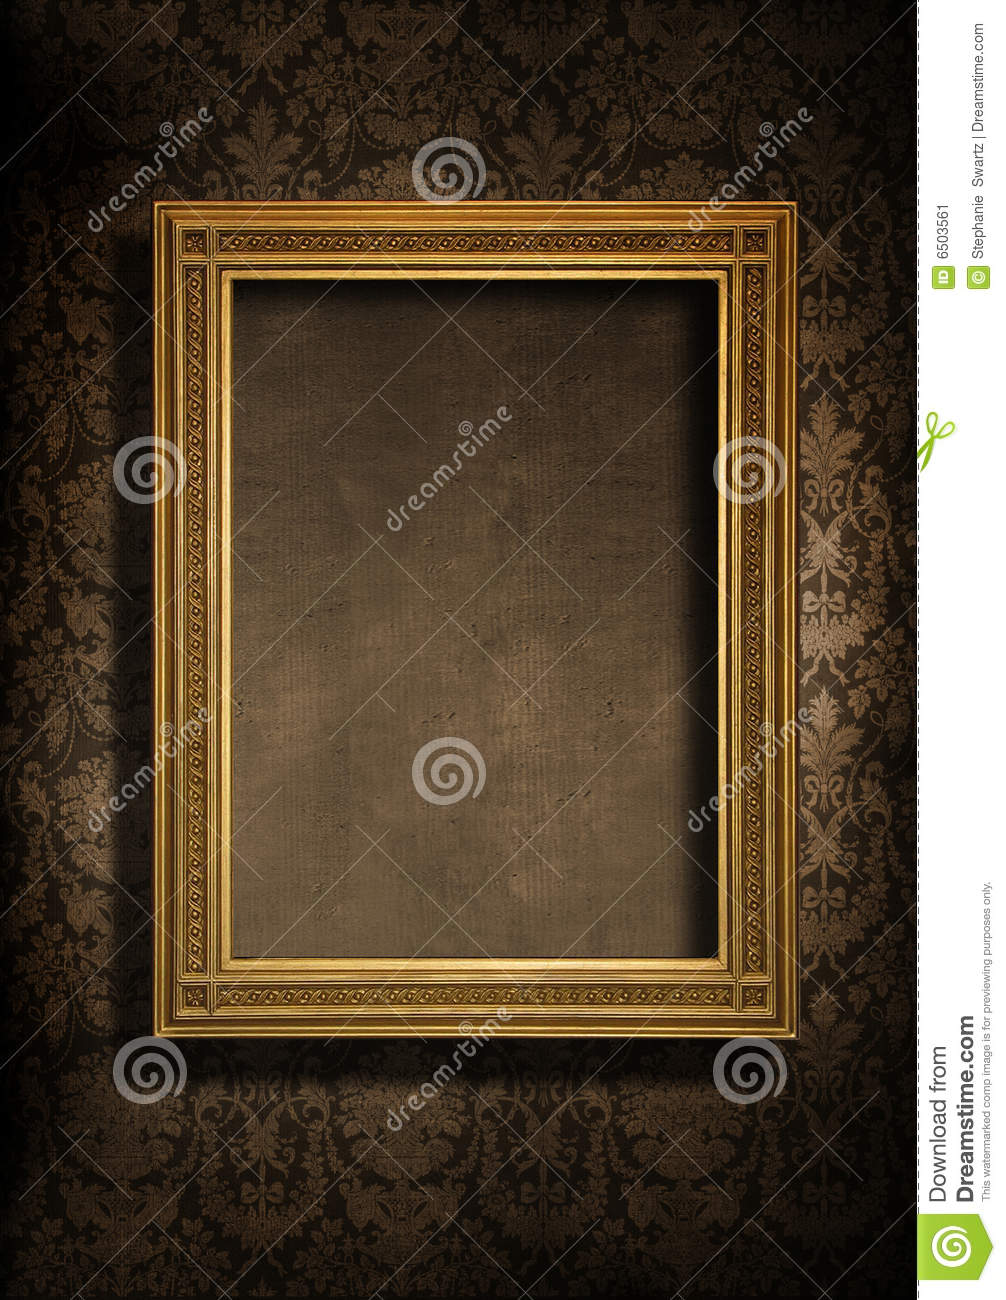 Grungy wall and frame